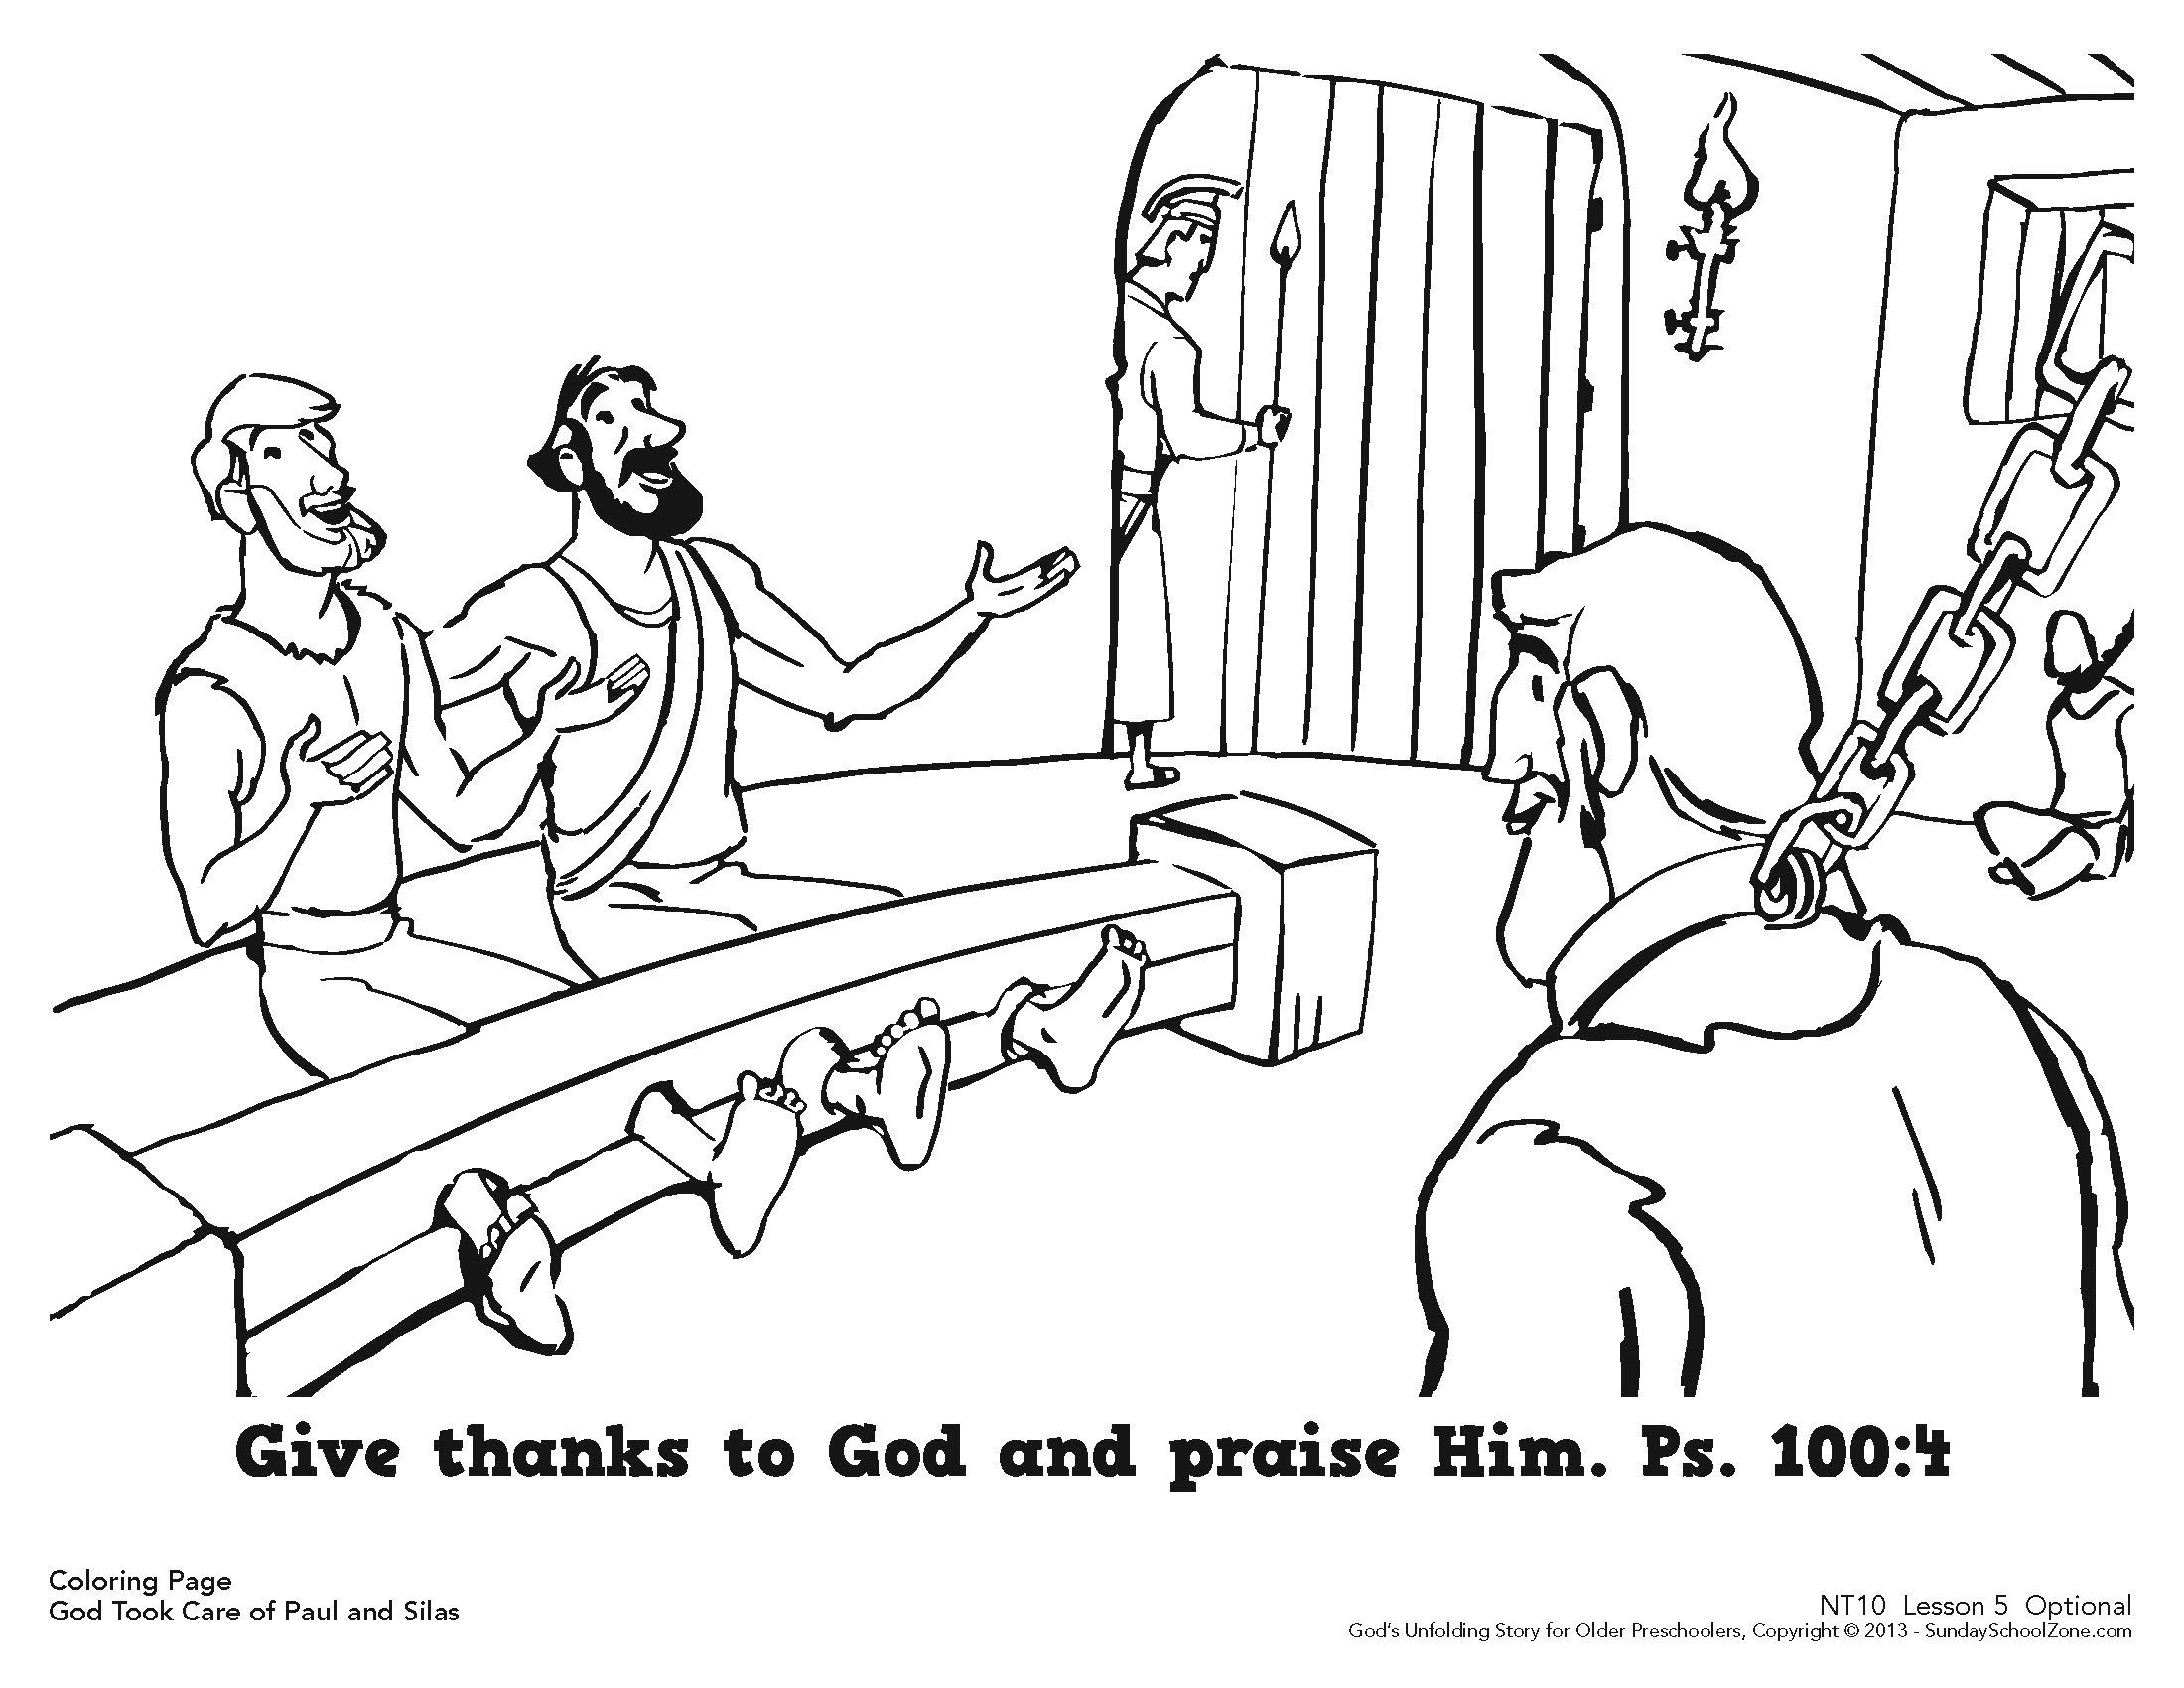 Paul And Silas Were Rescued From Jail Coloring Page For